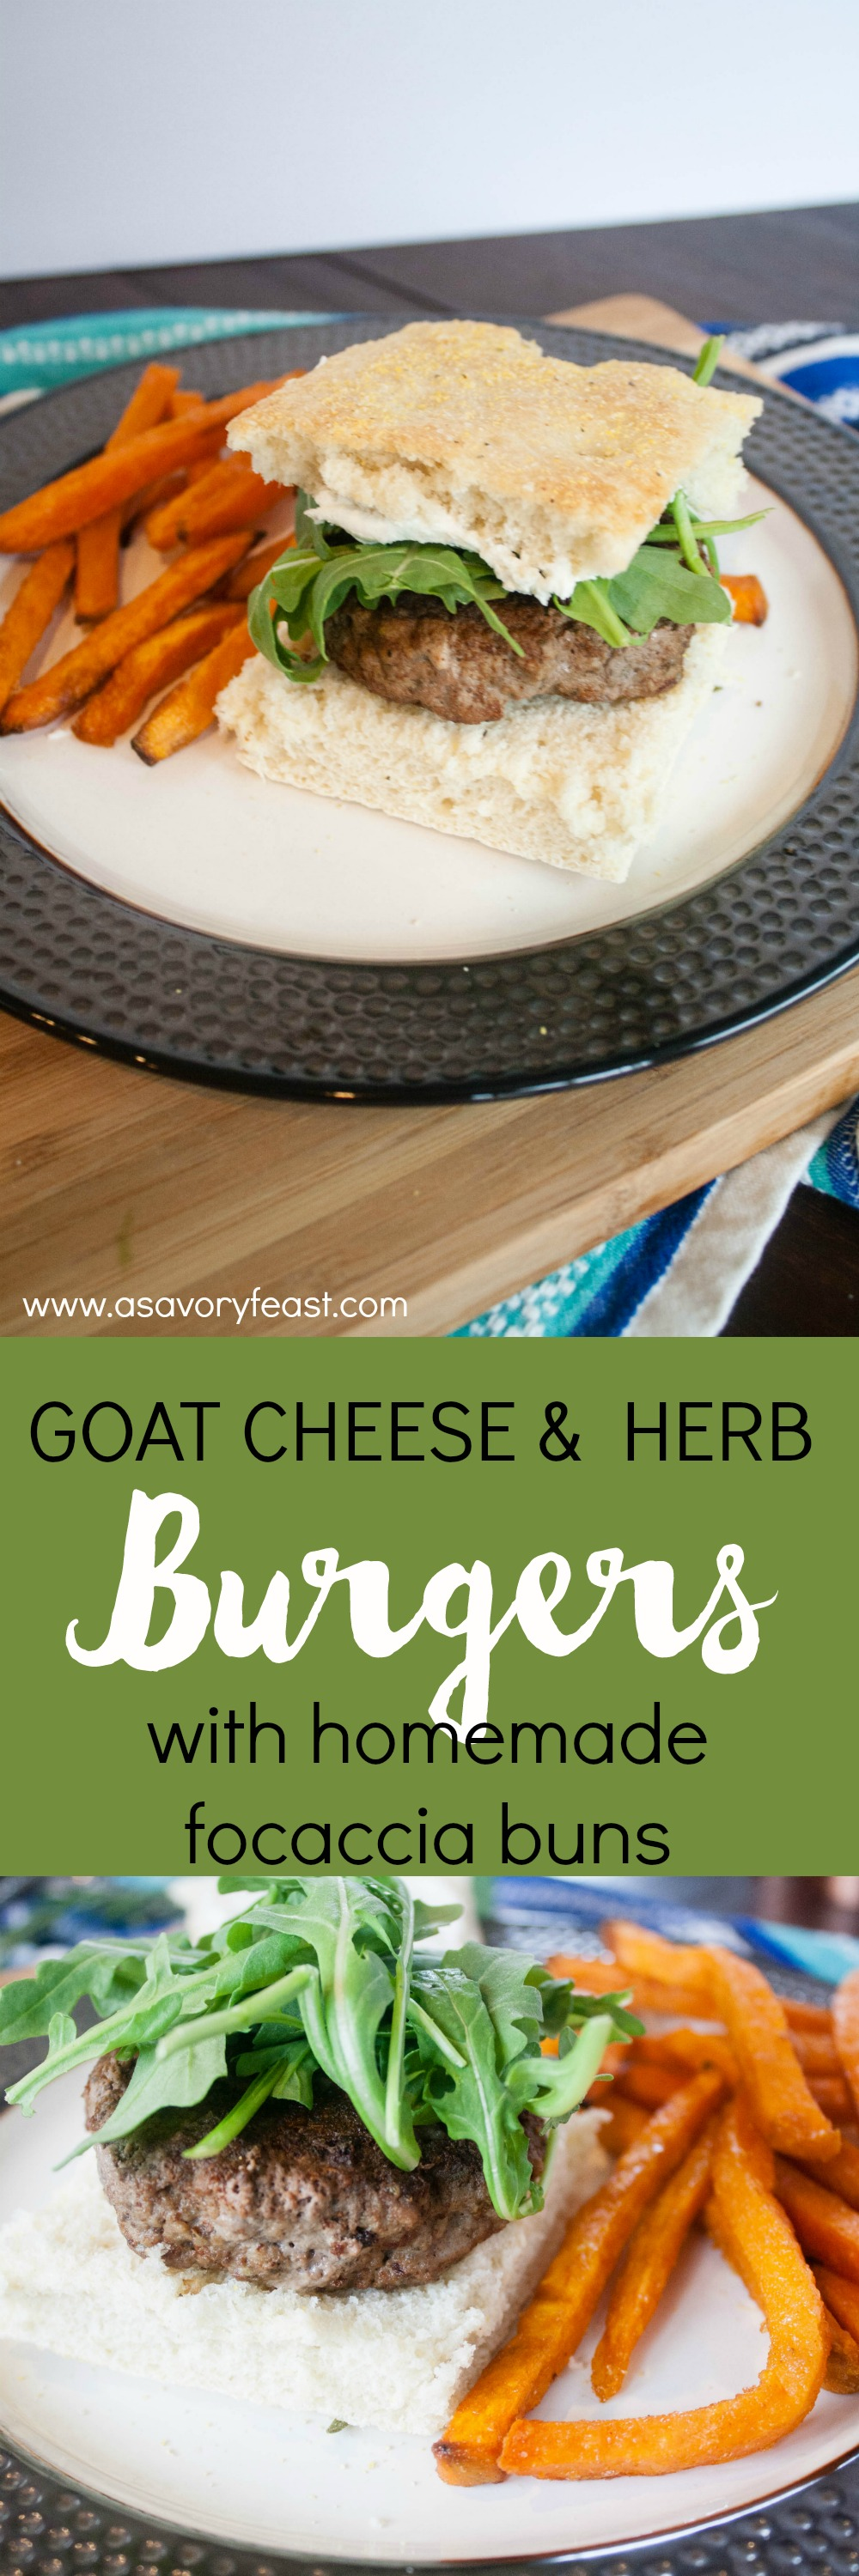 Summer means cookout season! Try something new with these Goat Cheese and Herb Burgers with Homemade Focaccia Buns. A flavorful burger topped with herb-infused goat cheese and arugula, all served on a made-from-scratch focaccia bun.